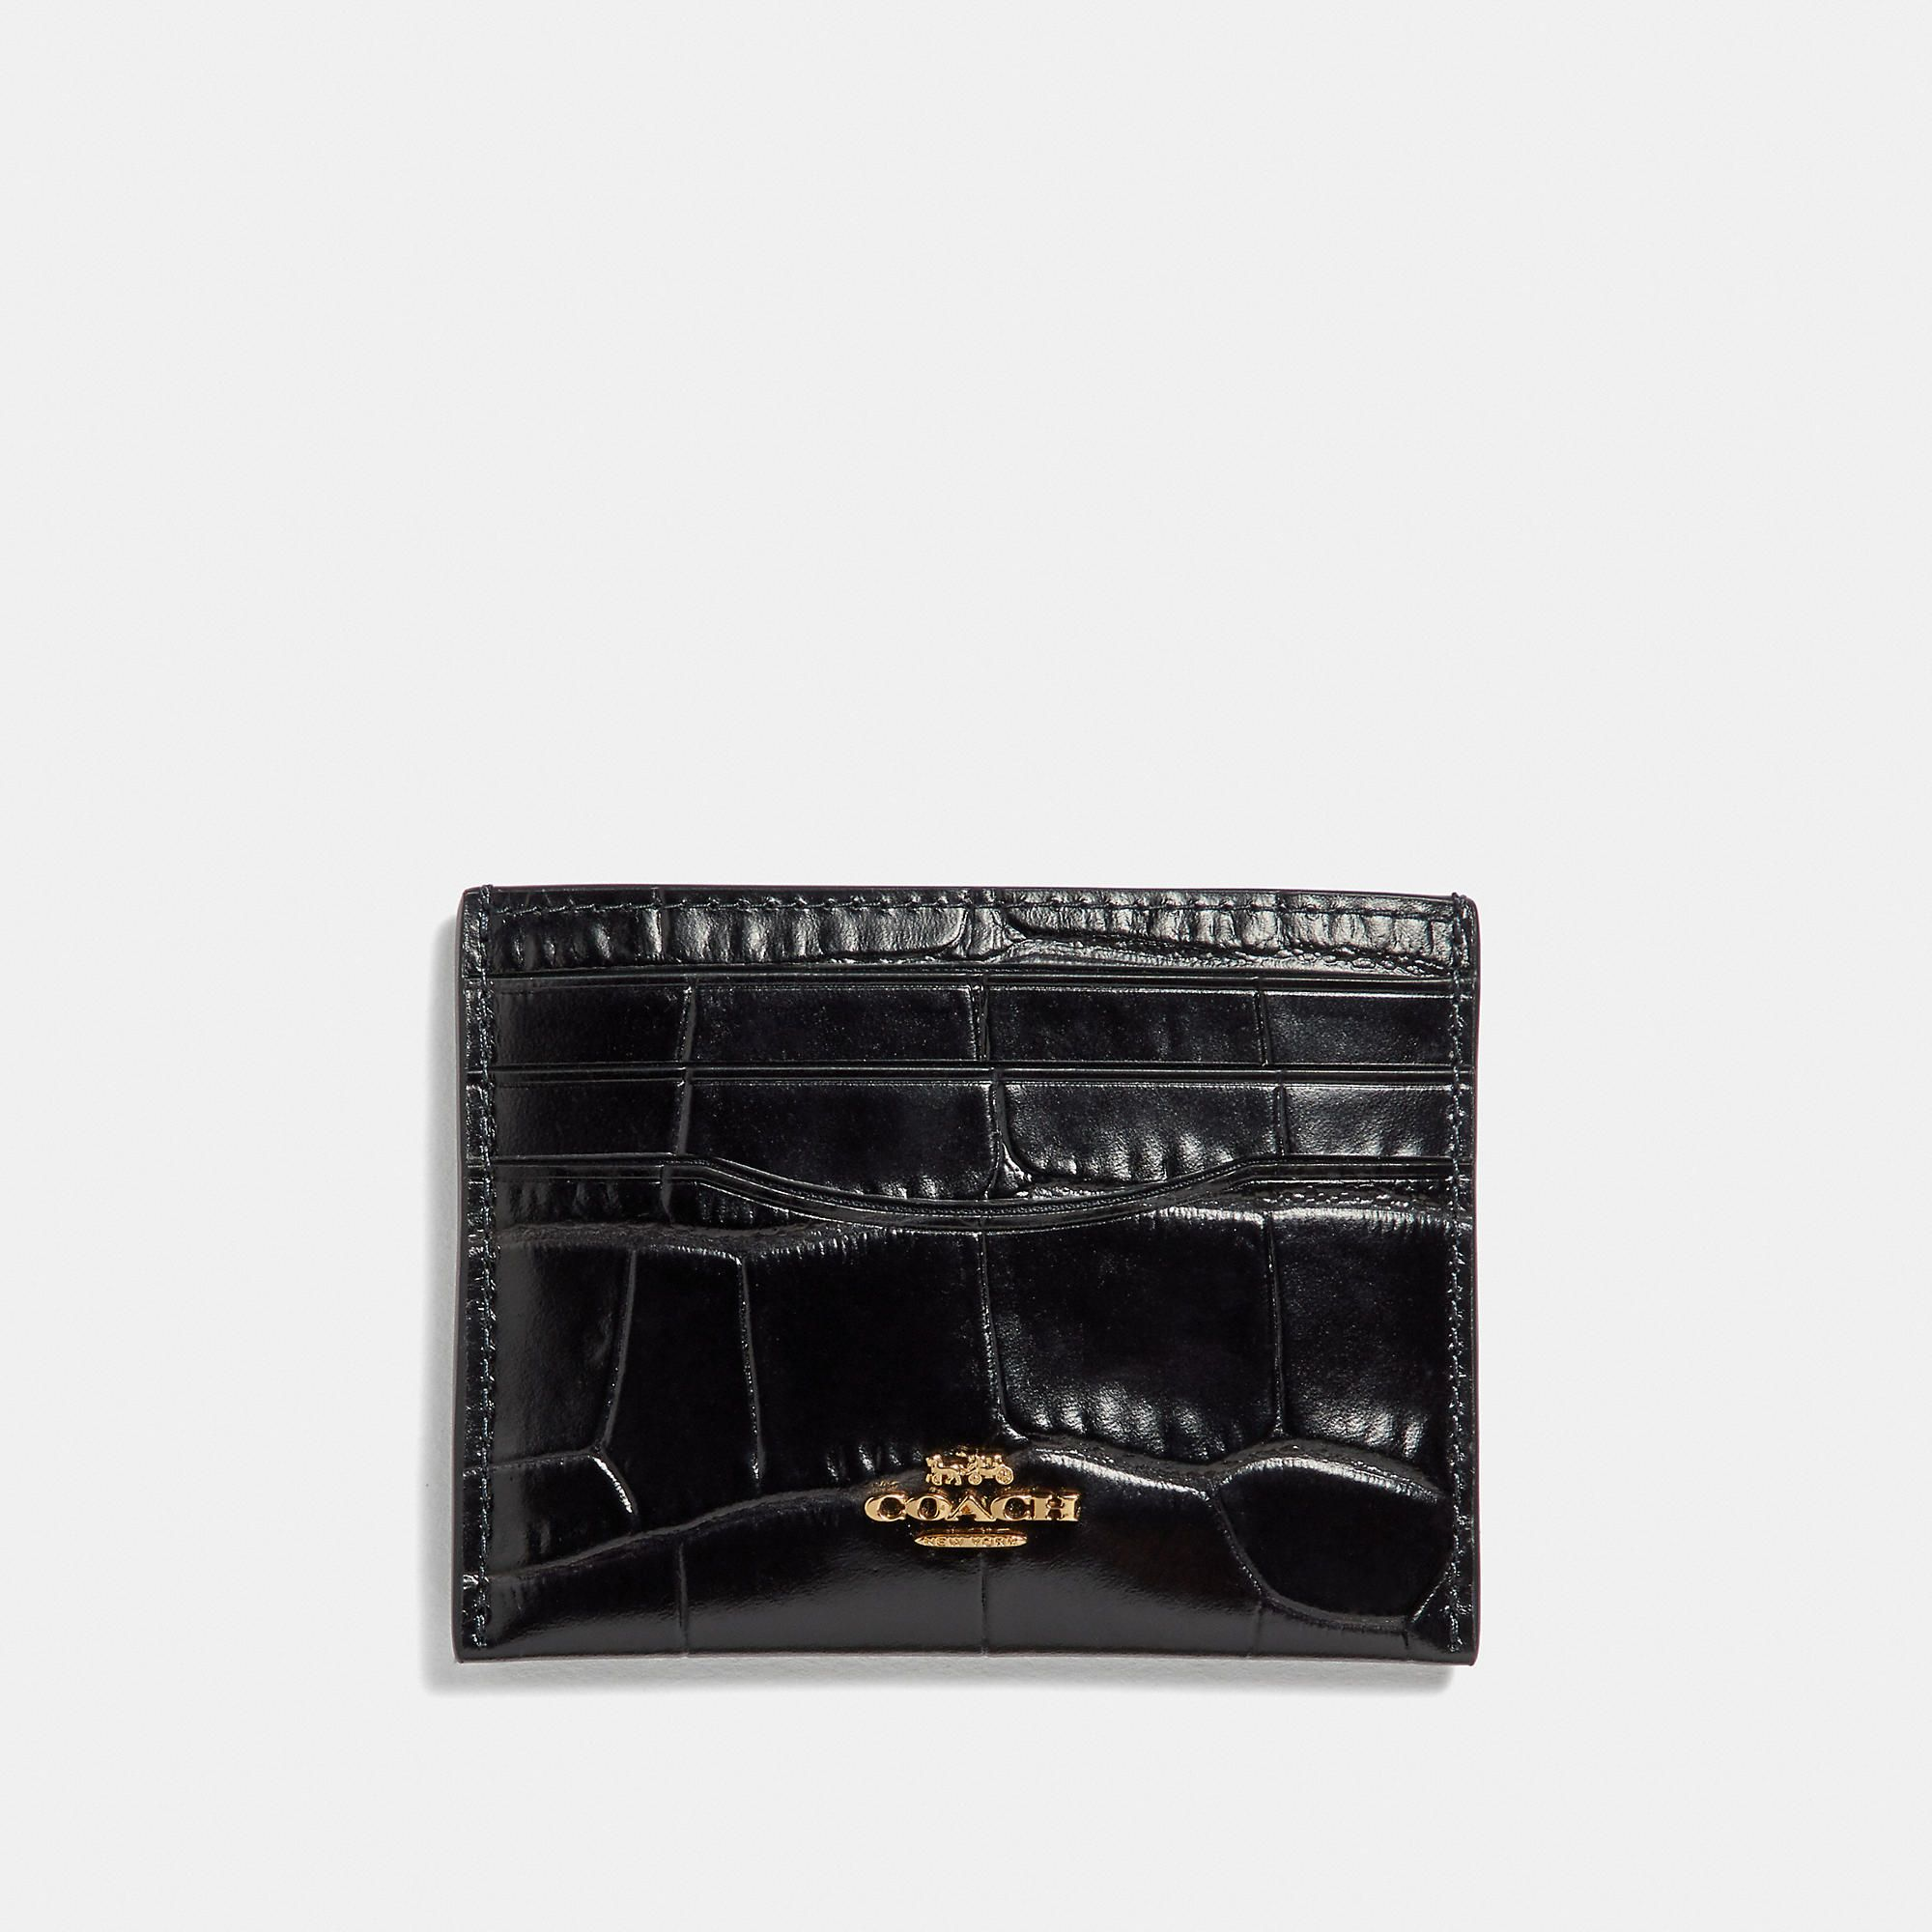 6161decf7c COACH Card Case - Women's Cardholder in 2019 | Products | Leather ...